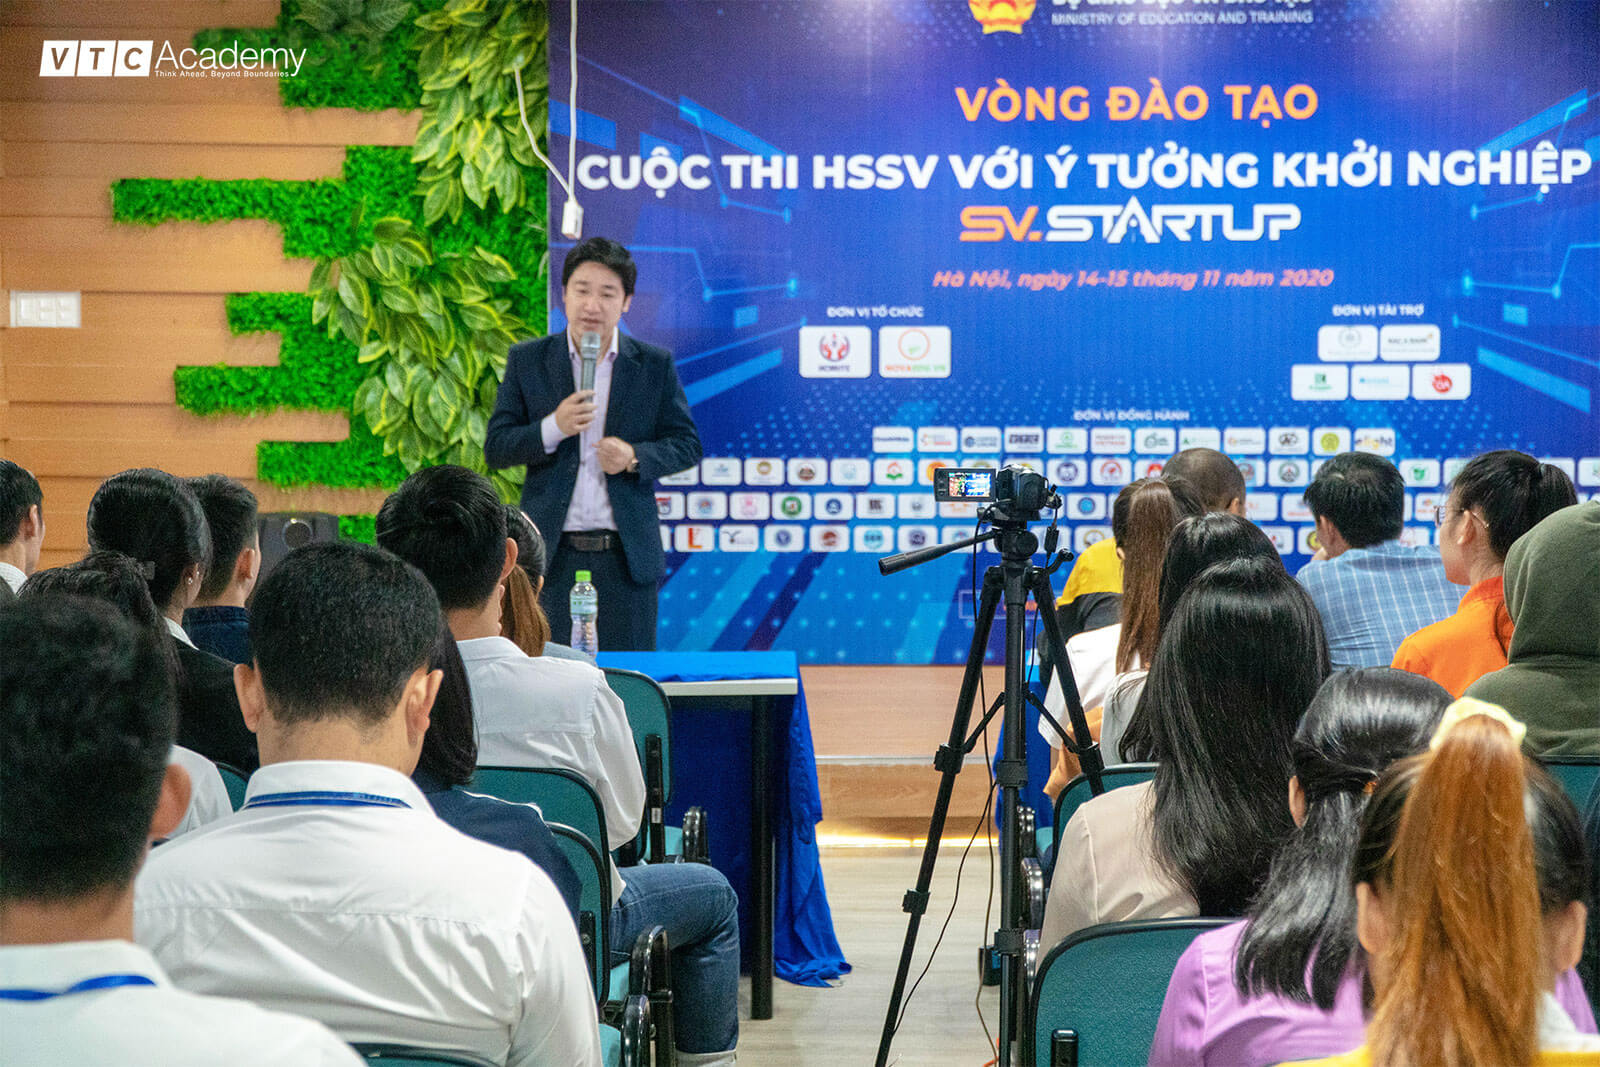 hssv-voi-y-tuong-sang-tao-vtc-academy-3